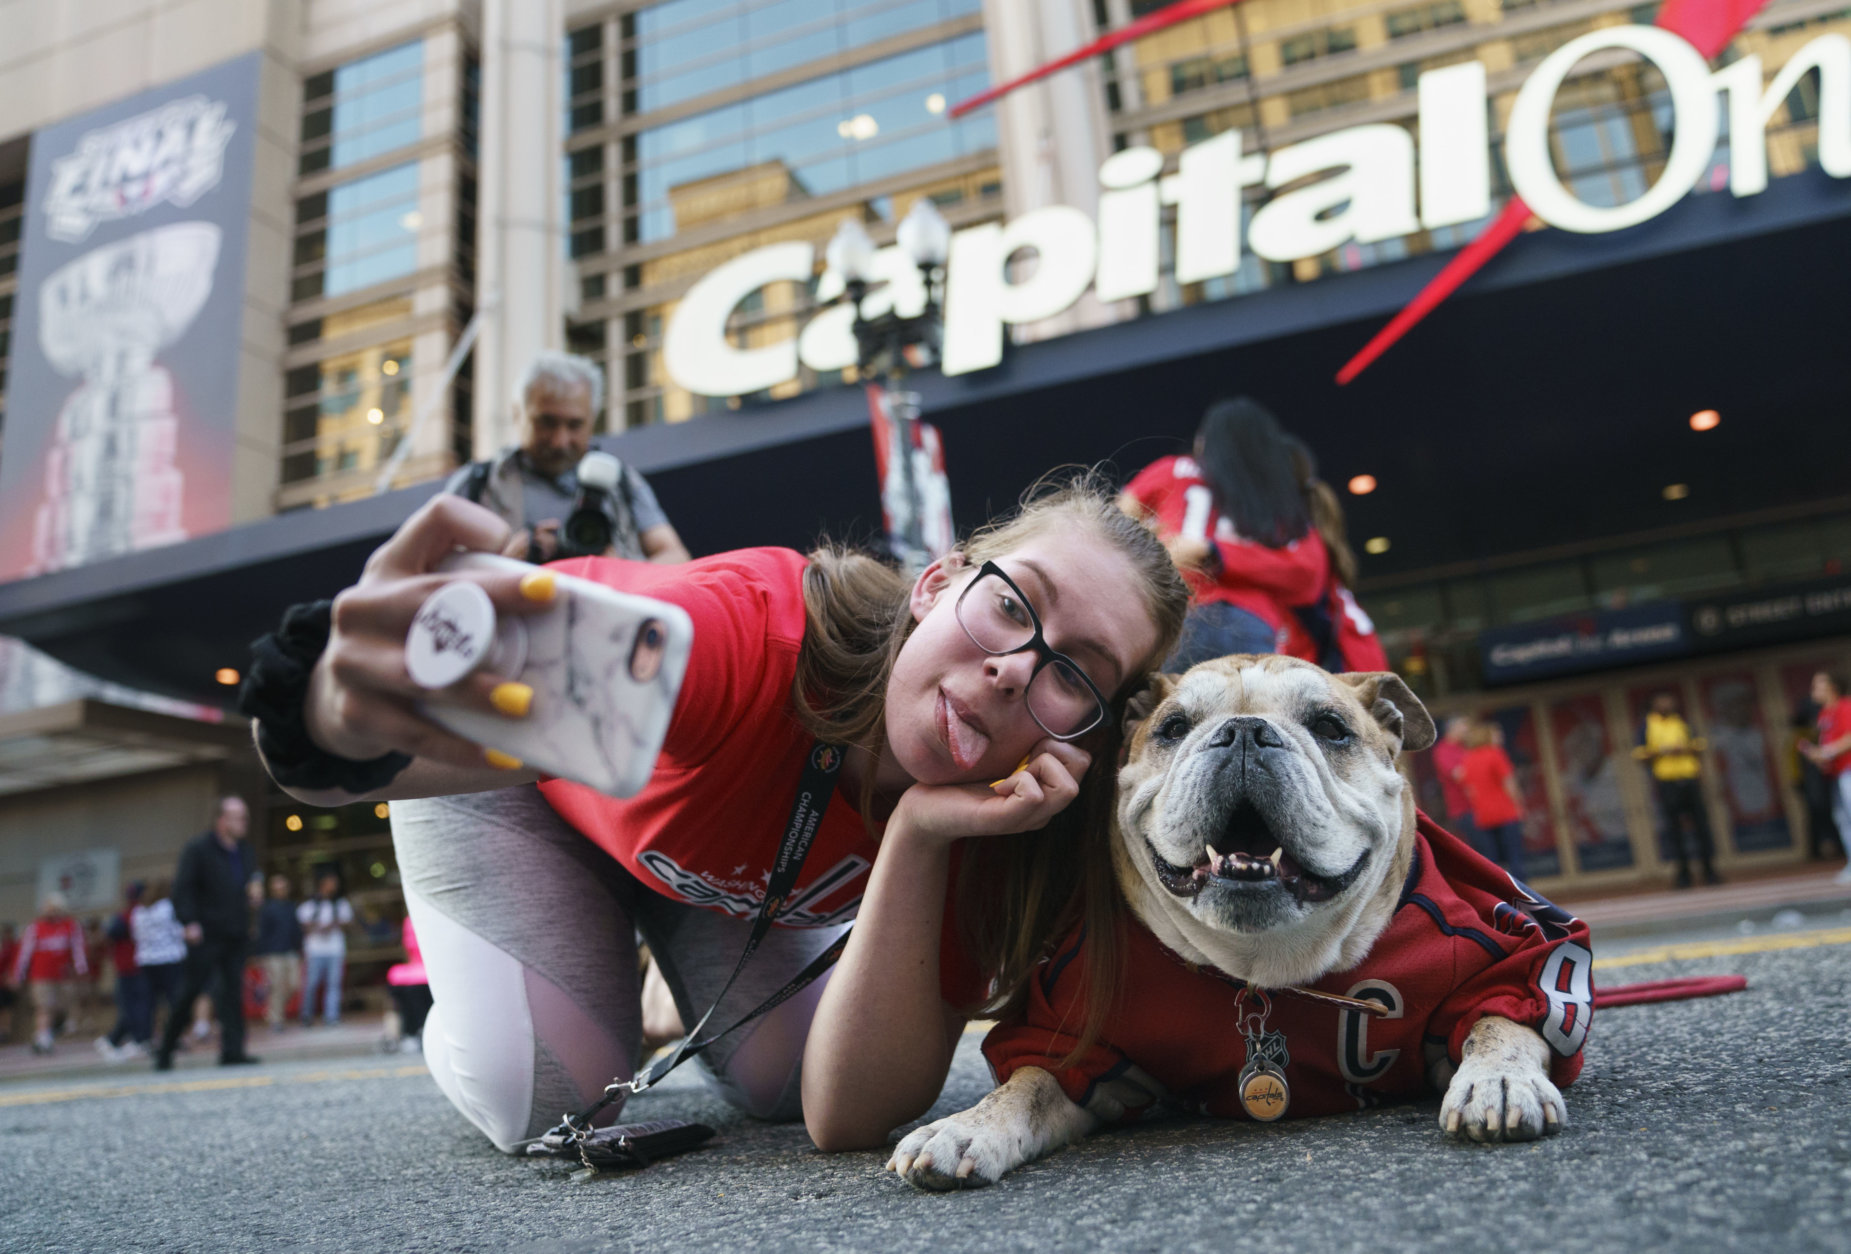 A Washington Capitals fan poses for a photo with Ovie the Bulldog outside Capitol One Arena before Game 4 of the NHL hockey Stanley Cup Final between the Capitals and the Vegas Golden Knights, Monday, June 4, 2018, in Washington. (AP Photo/Carolyn Kaster)